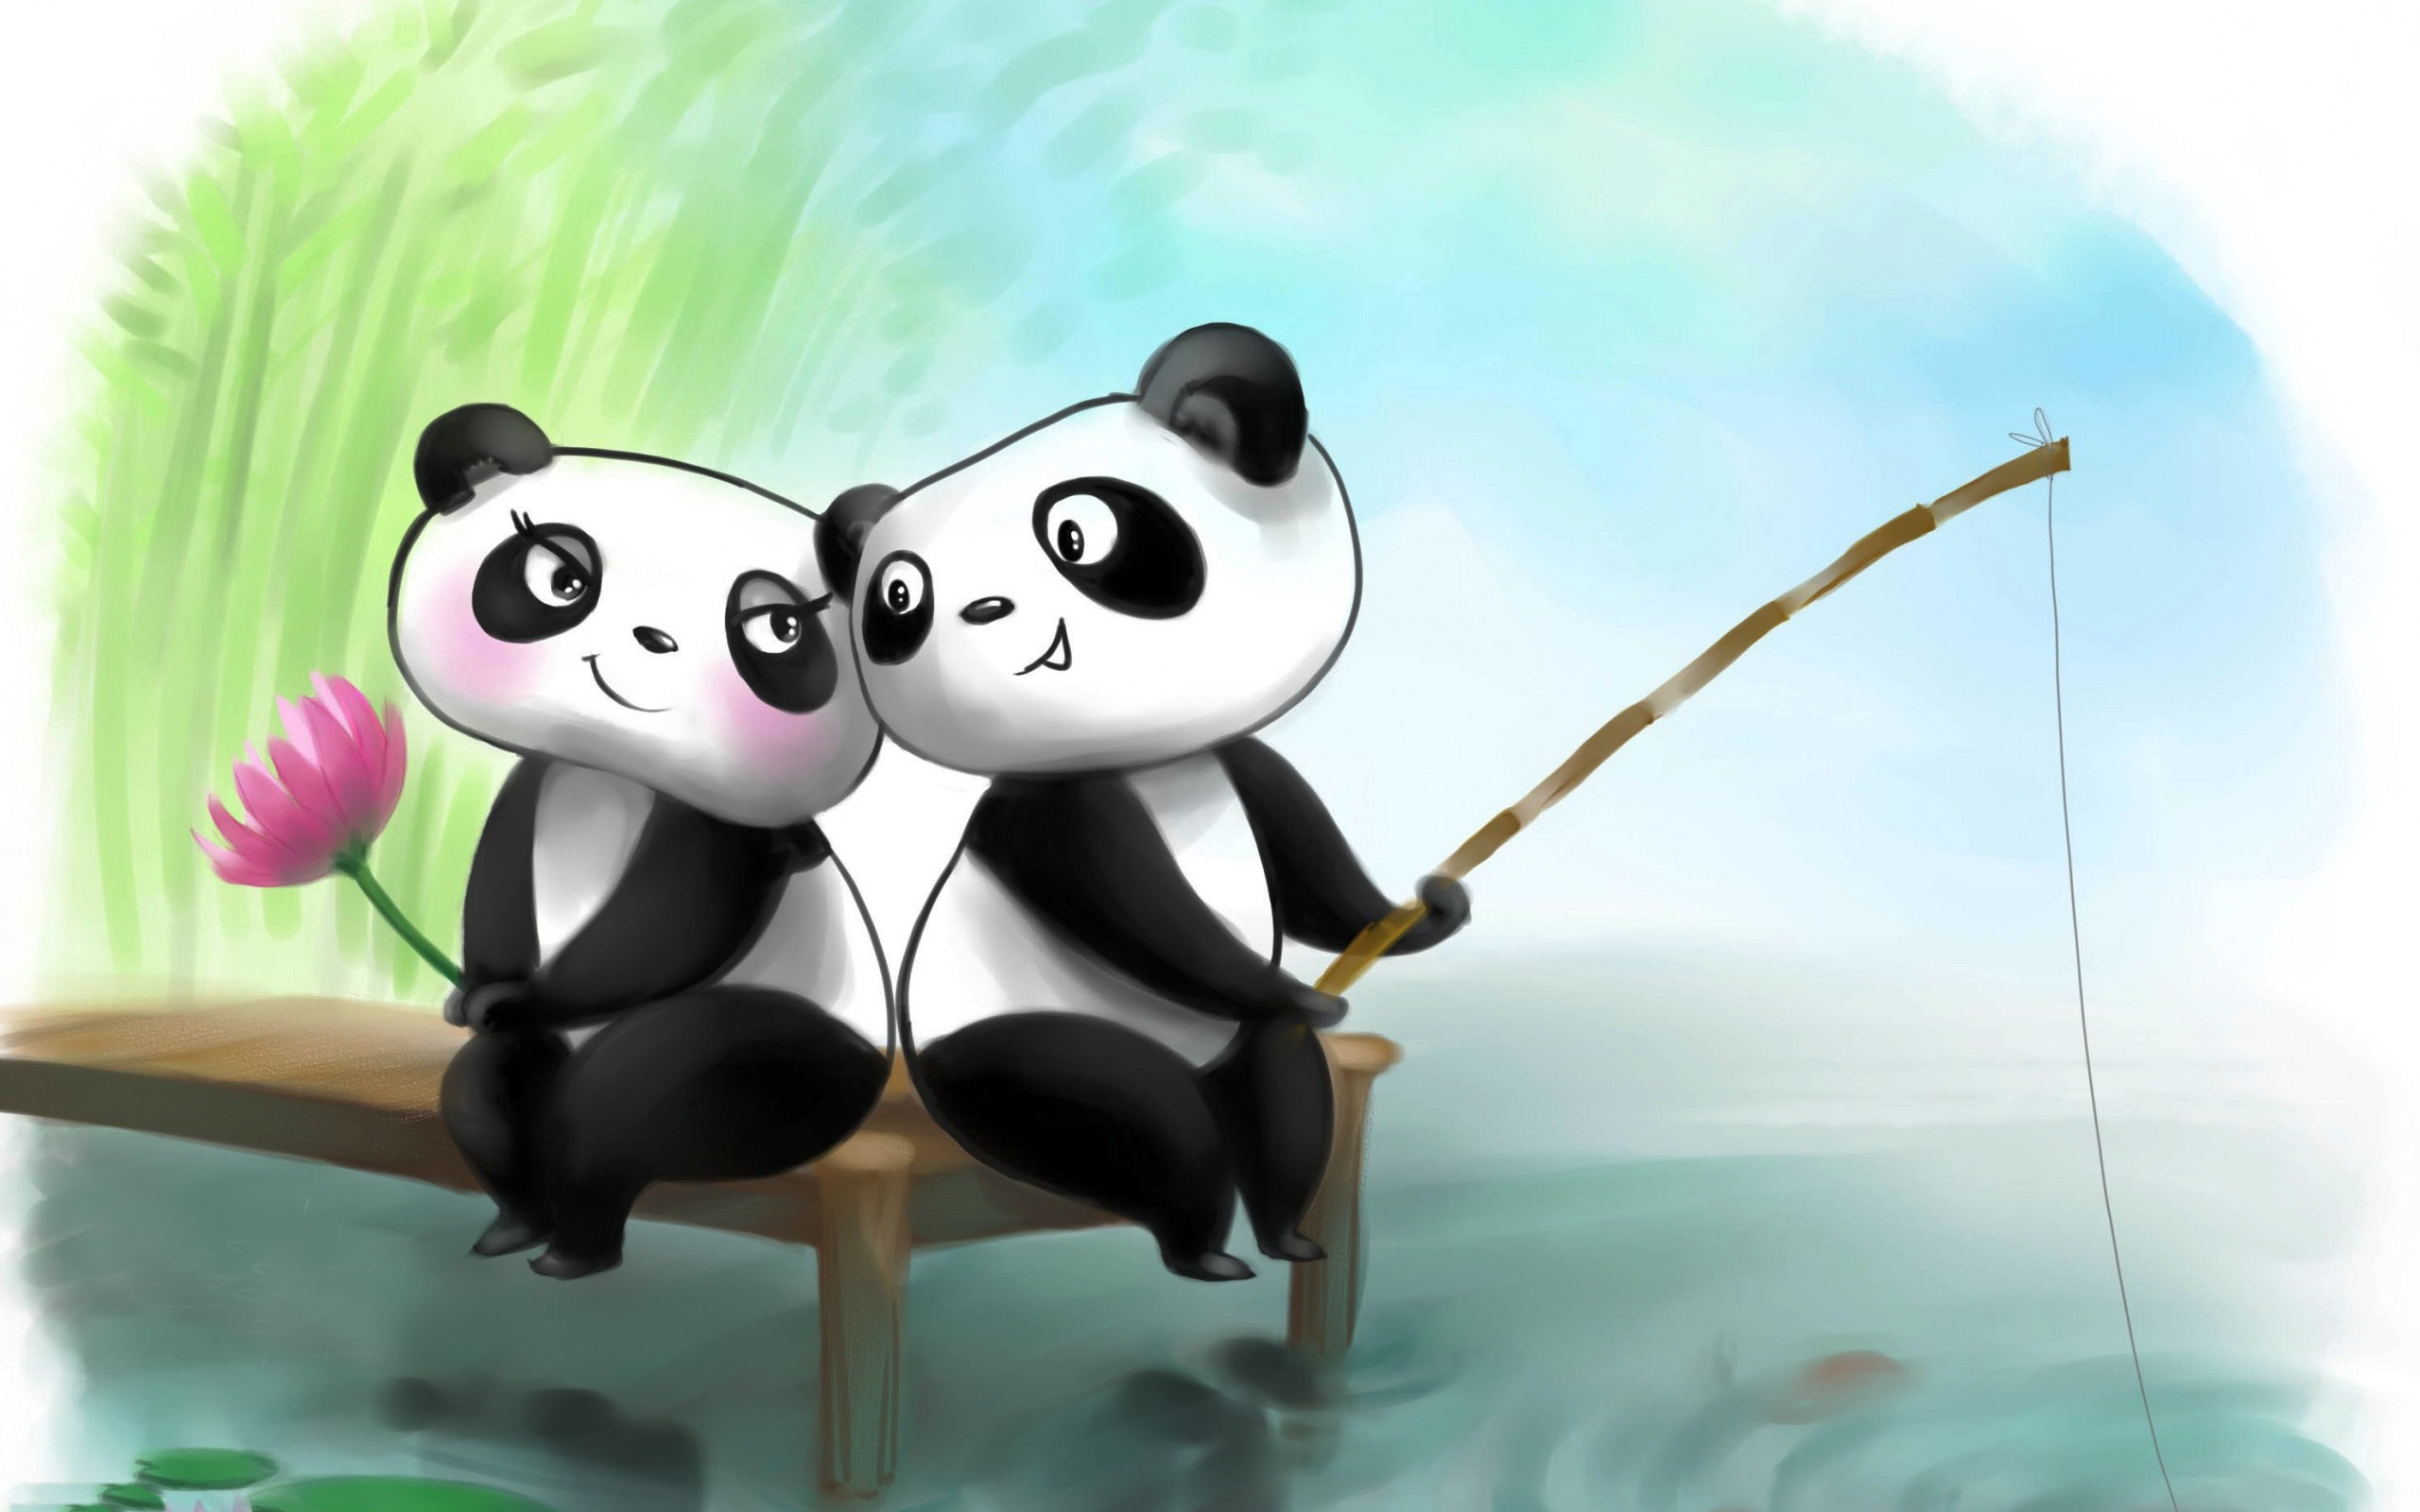 Baby Kung Fu Panda Hd Wallpapers Panda Hd Wallpaper 79 Images